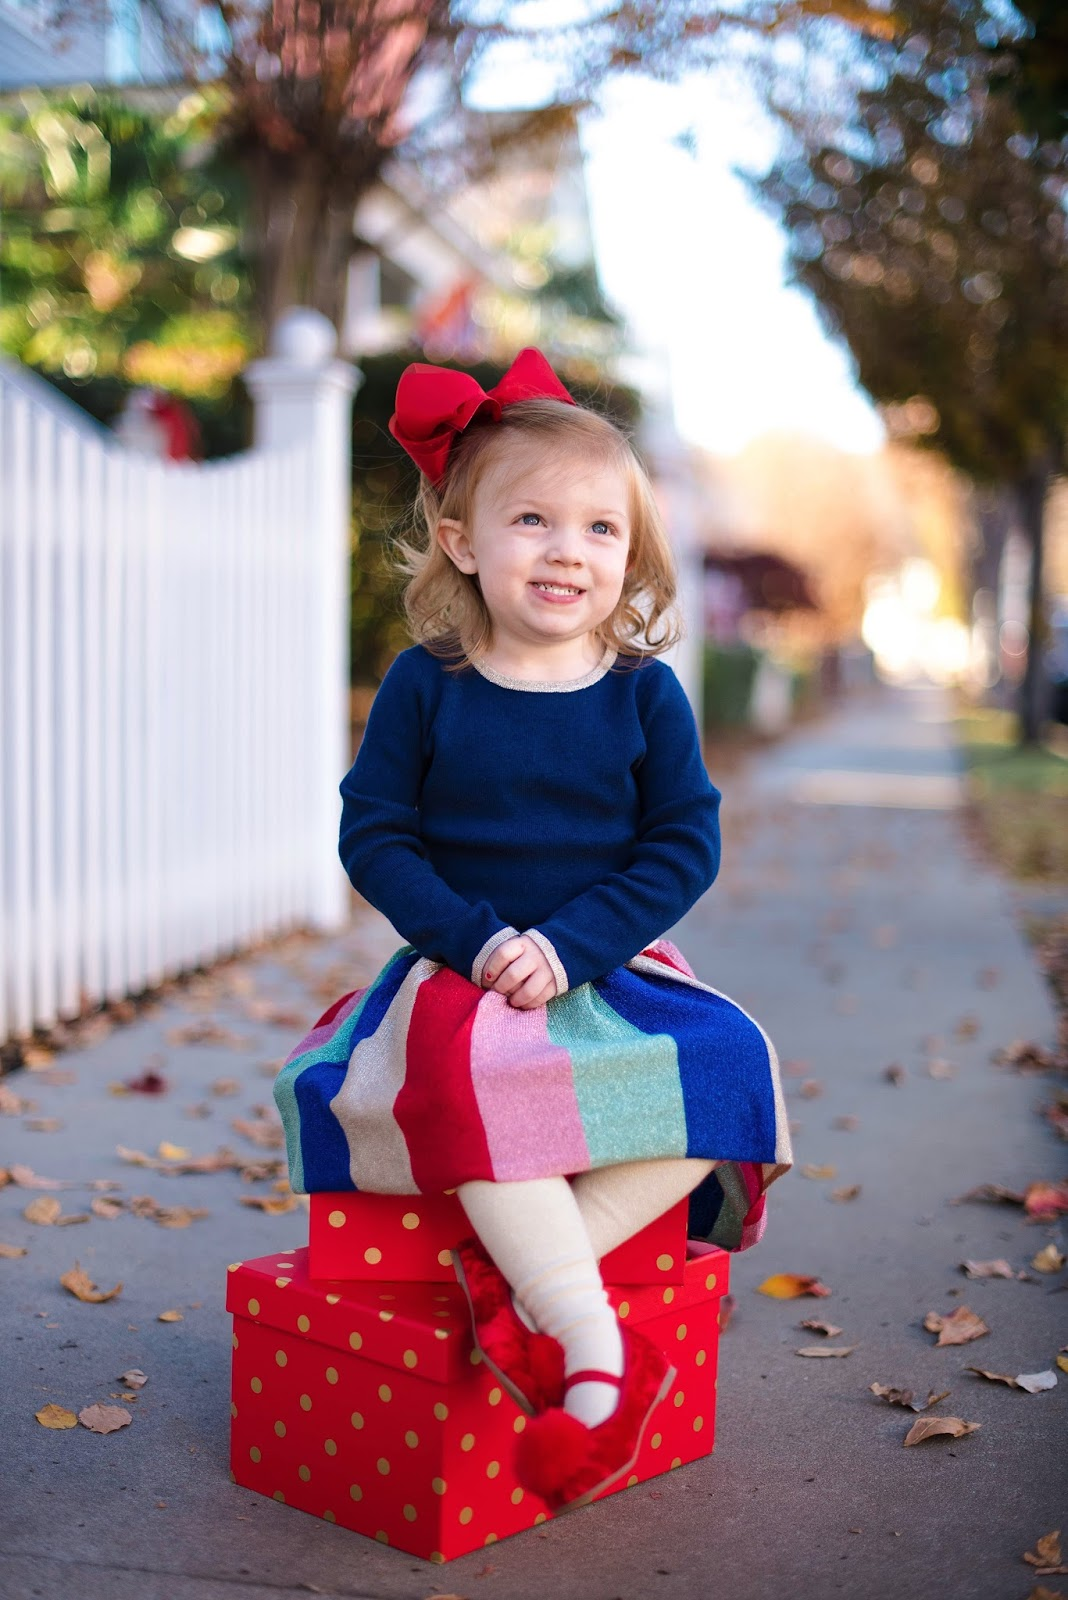 Toddler Holiday Style - Something Delightful Blog